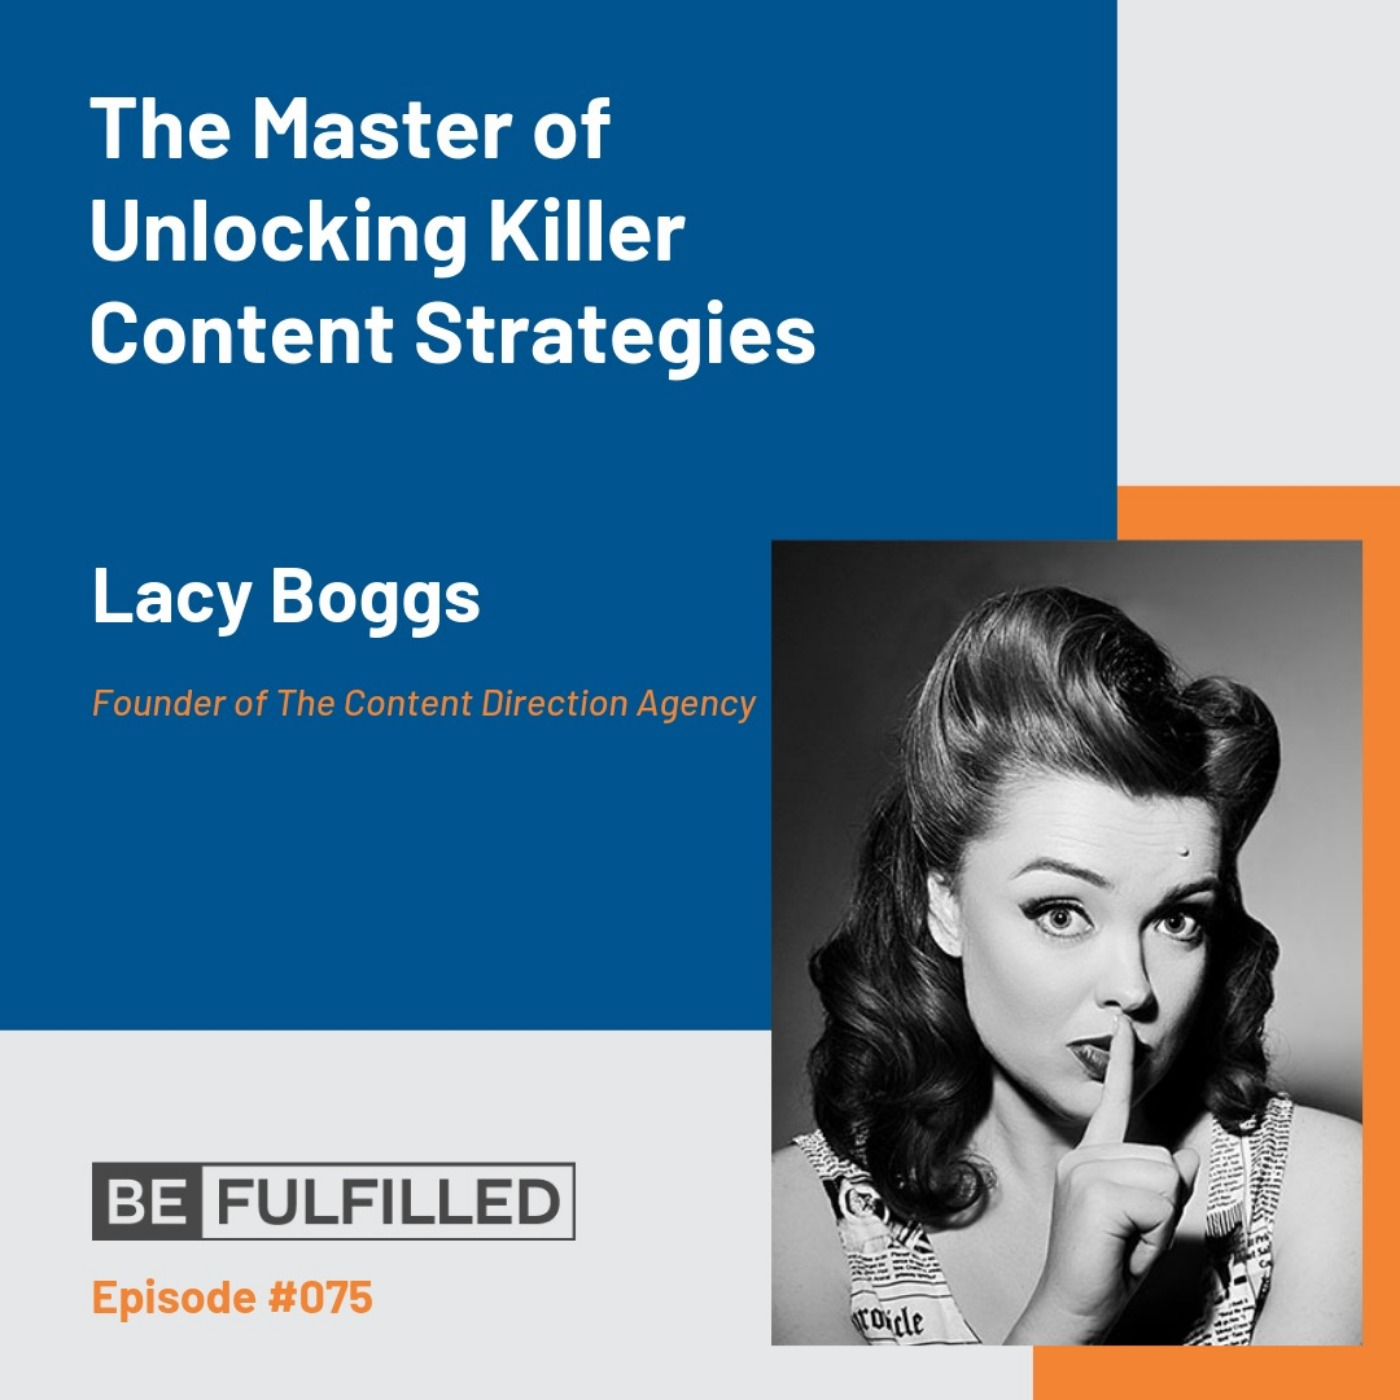 The Master of Unlocking Killer Content Strategies - Lacy Boggs